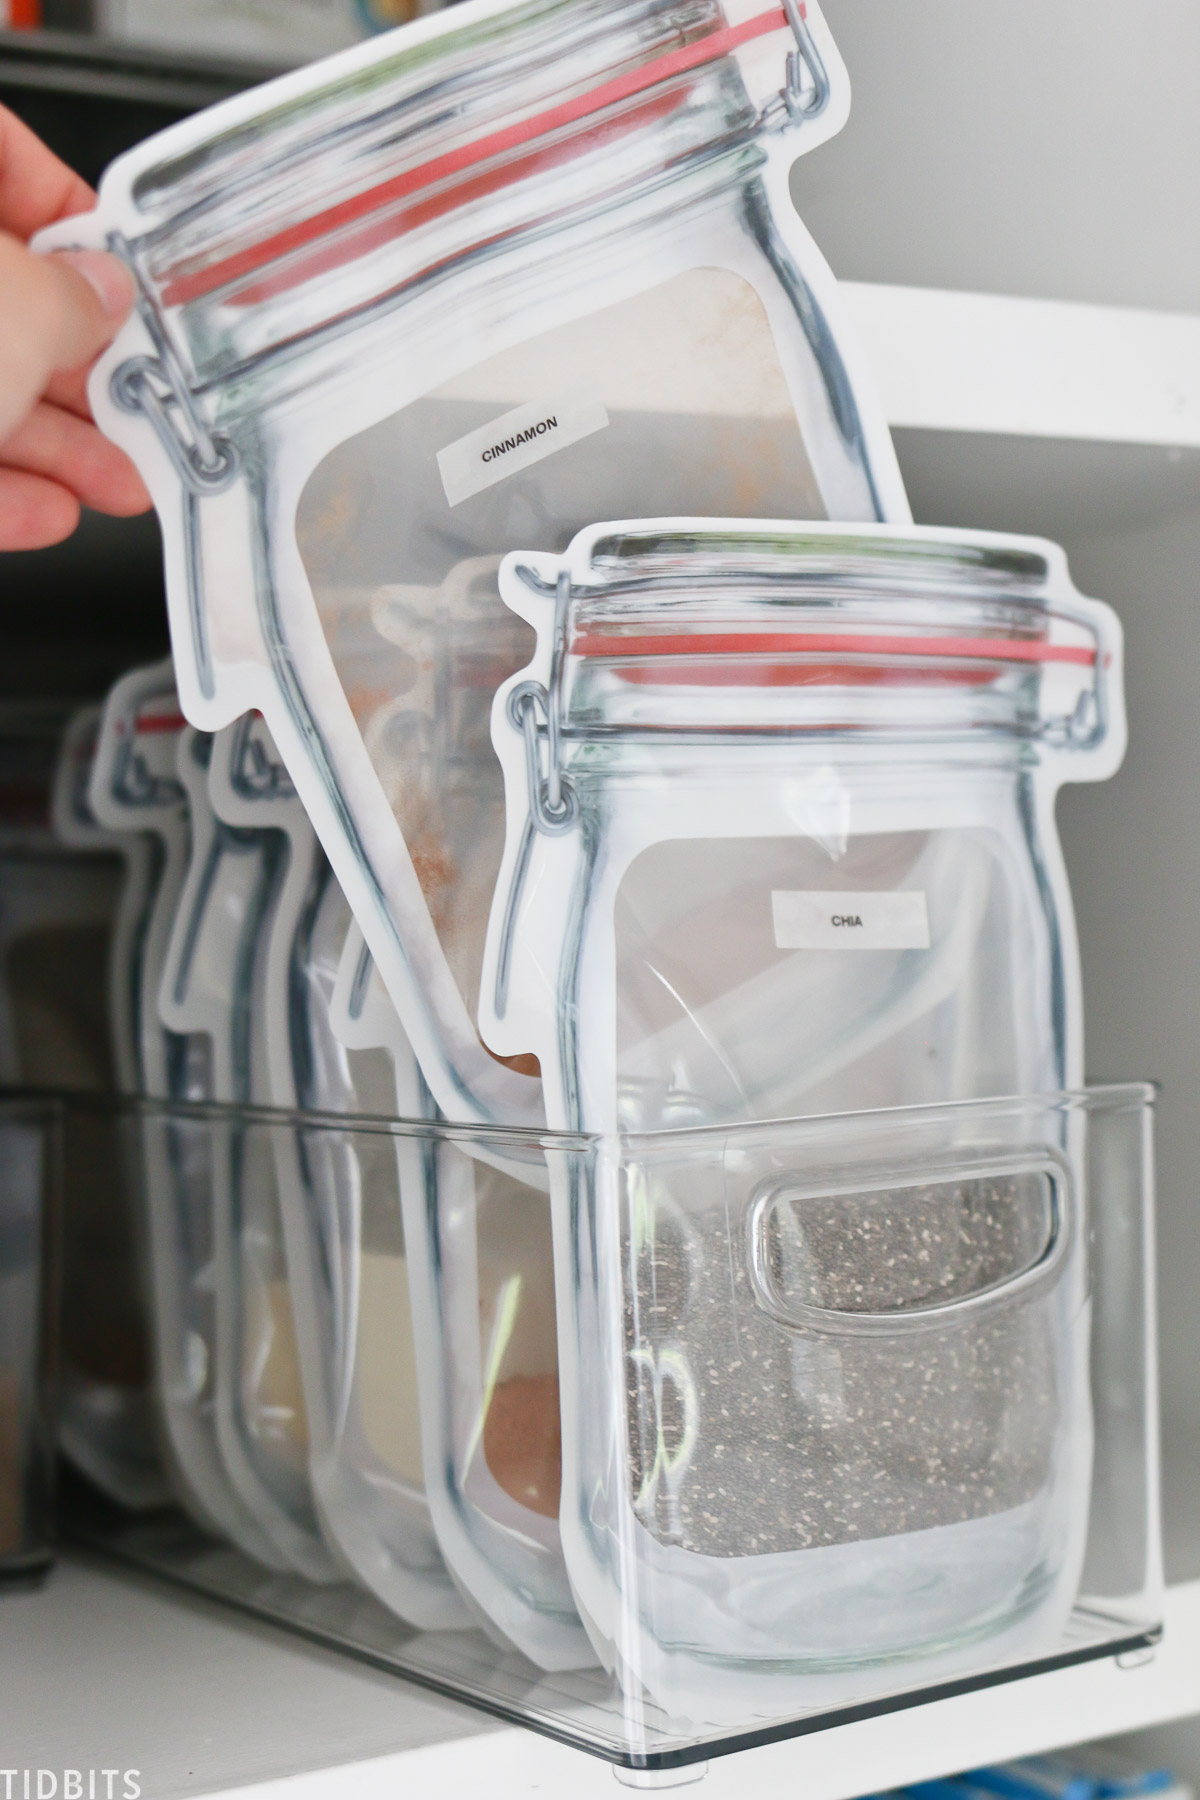 Bagged items and clear containers work great for small pantry organization.